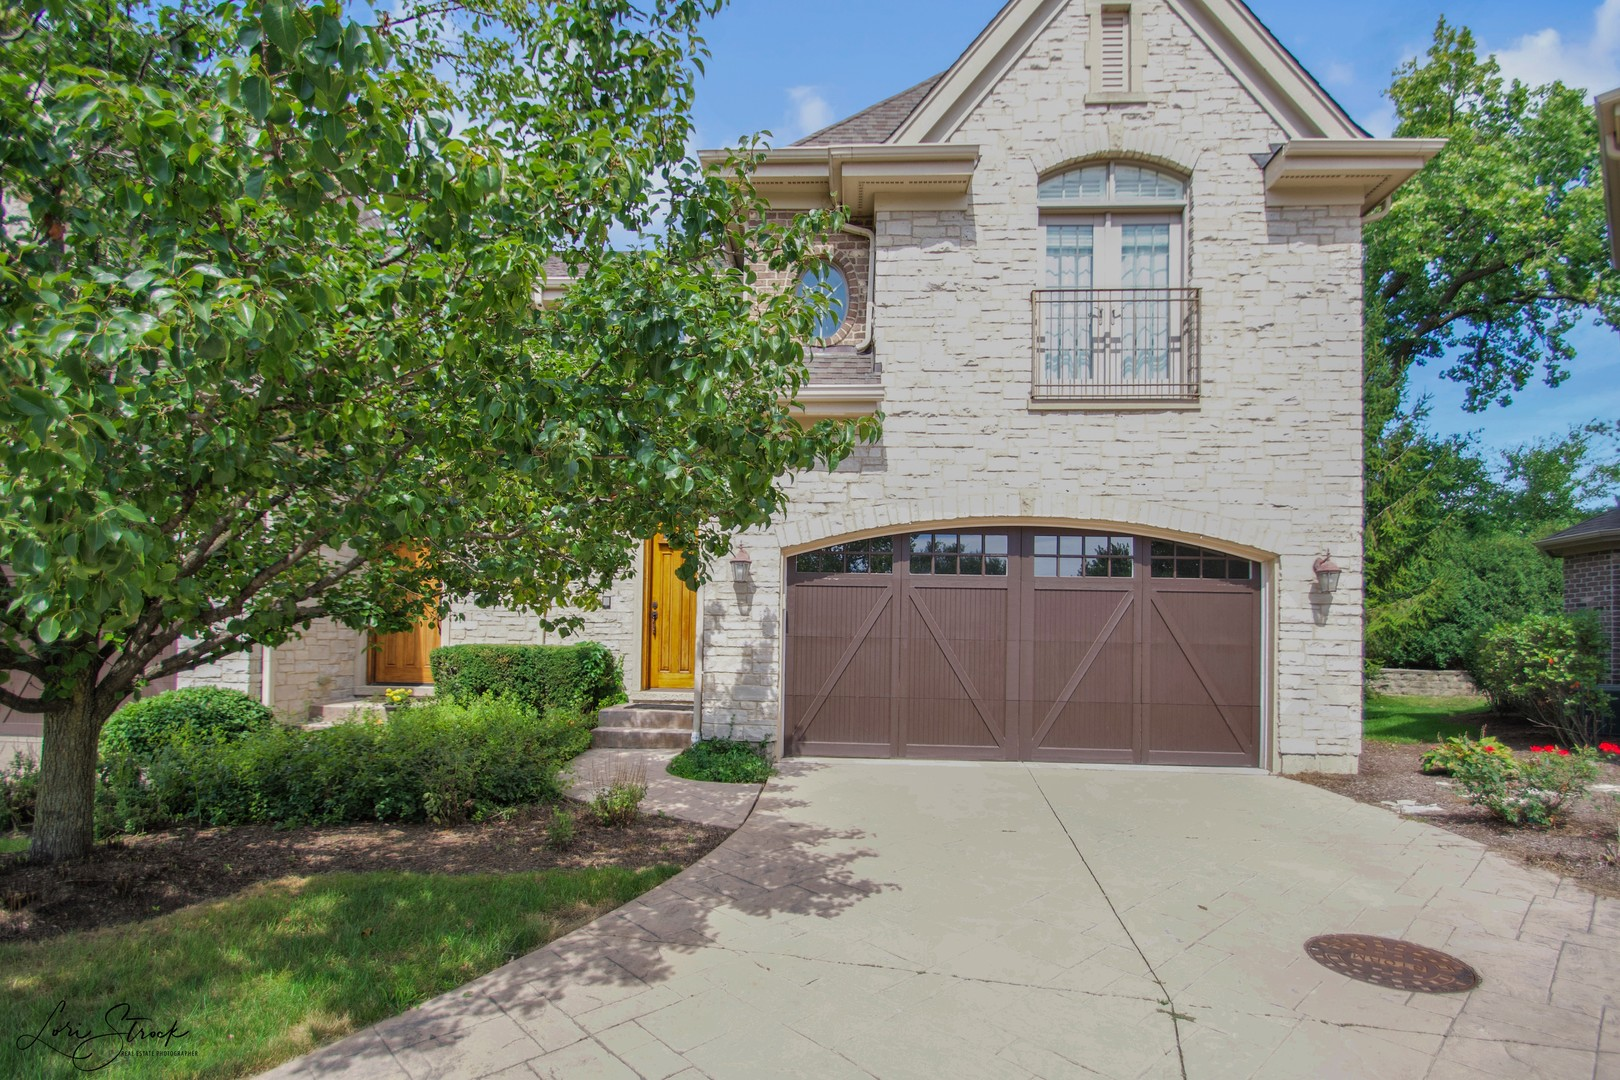 1183 Caroline Court, Vernon Hills in Lake County, IL 60061 Home for Sale